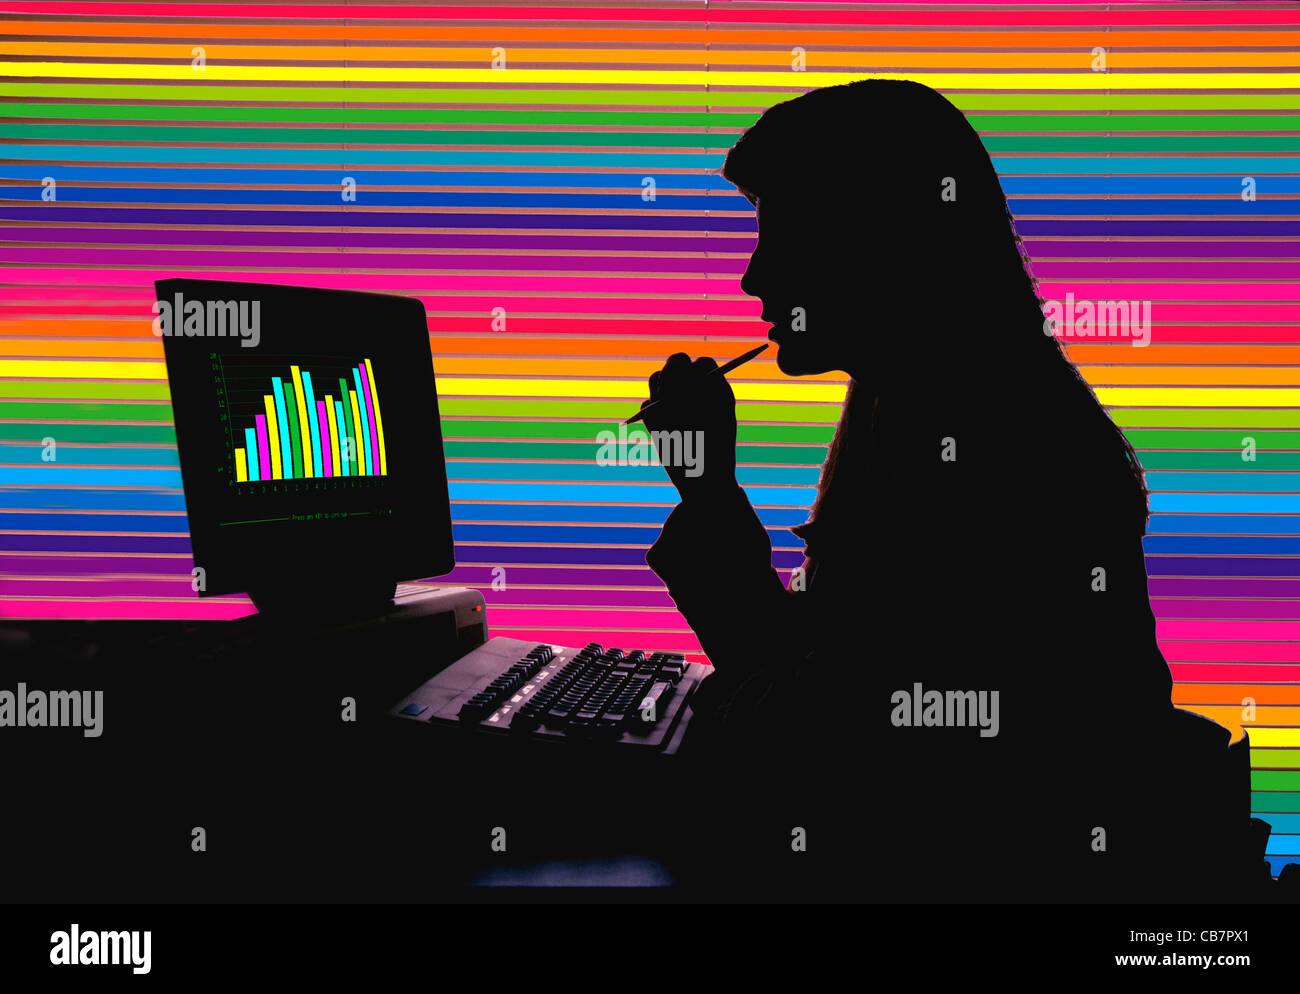 Woman with office computer, illustration. - Stock Image